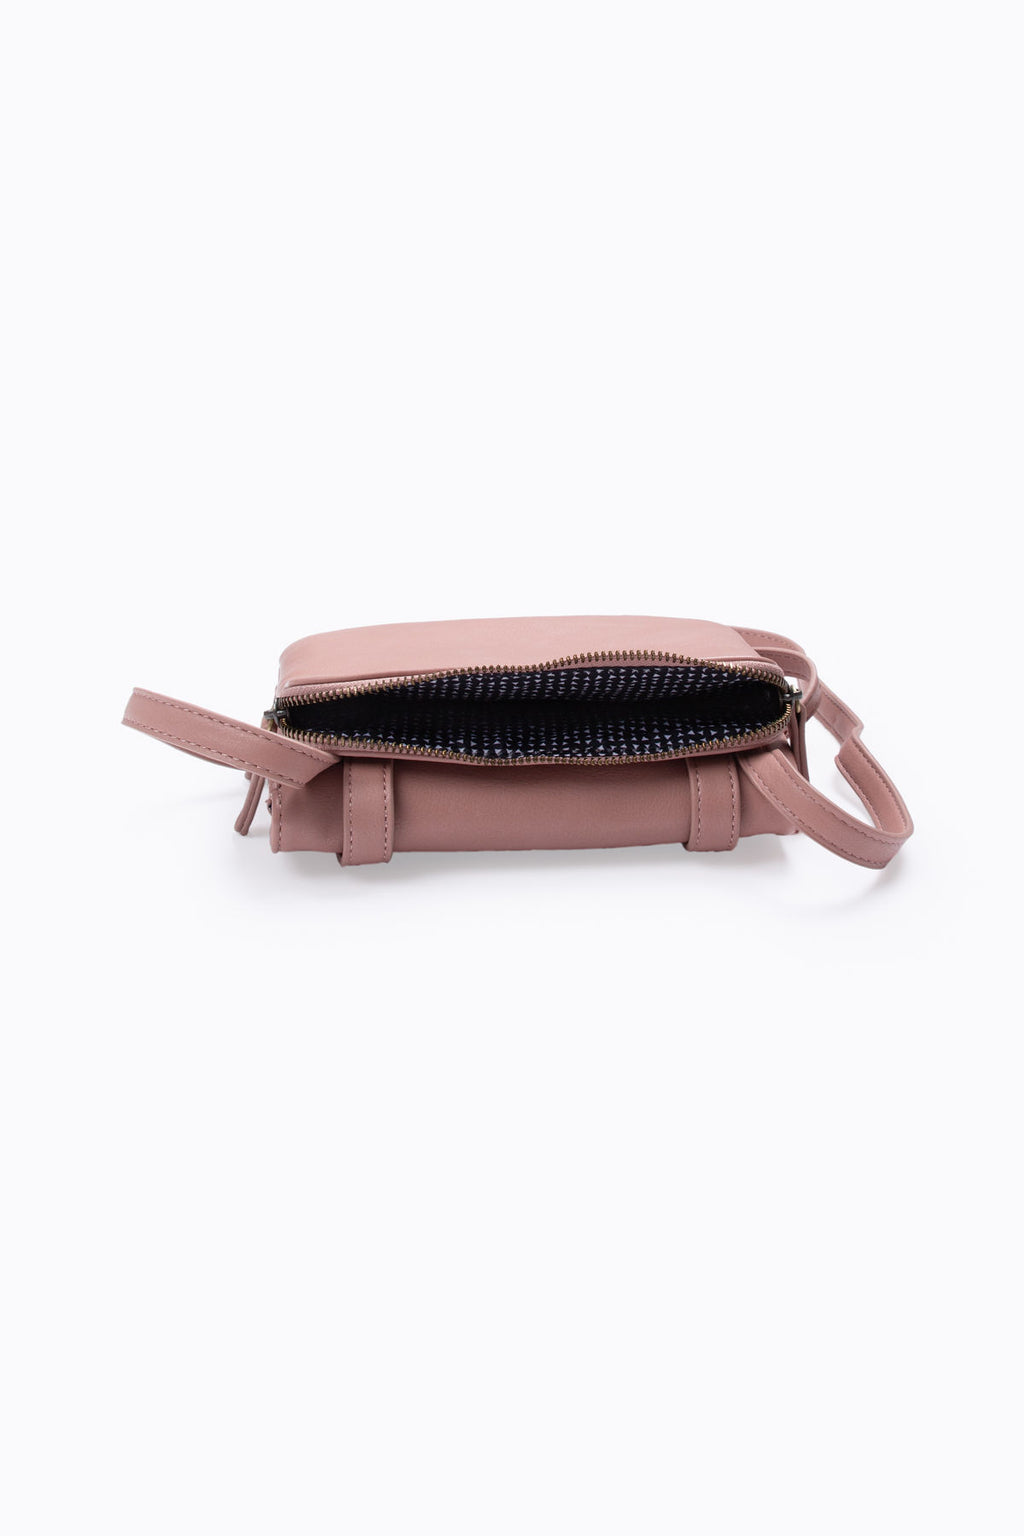 The Kiki Crossbody Bag in Blush